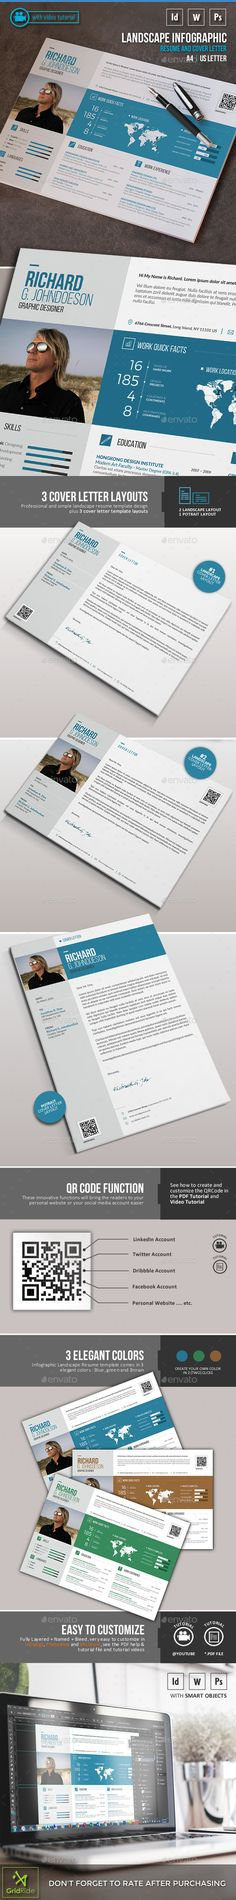 CV Design u2026 Pinteresu2026 - awesome resumes templates